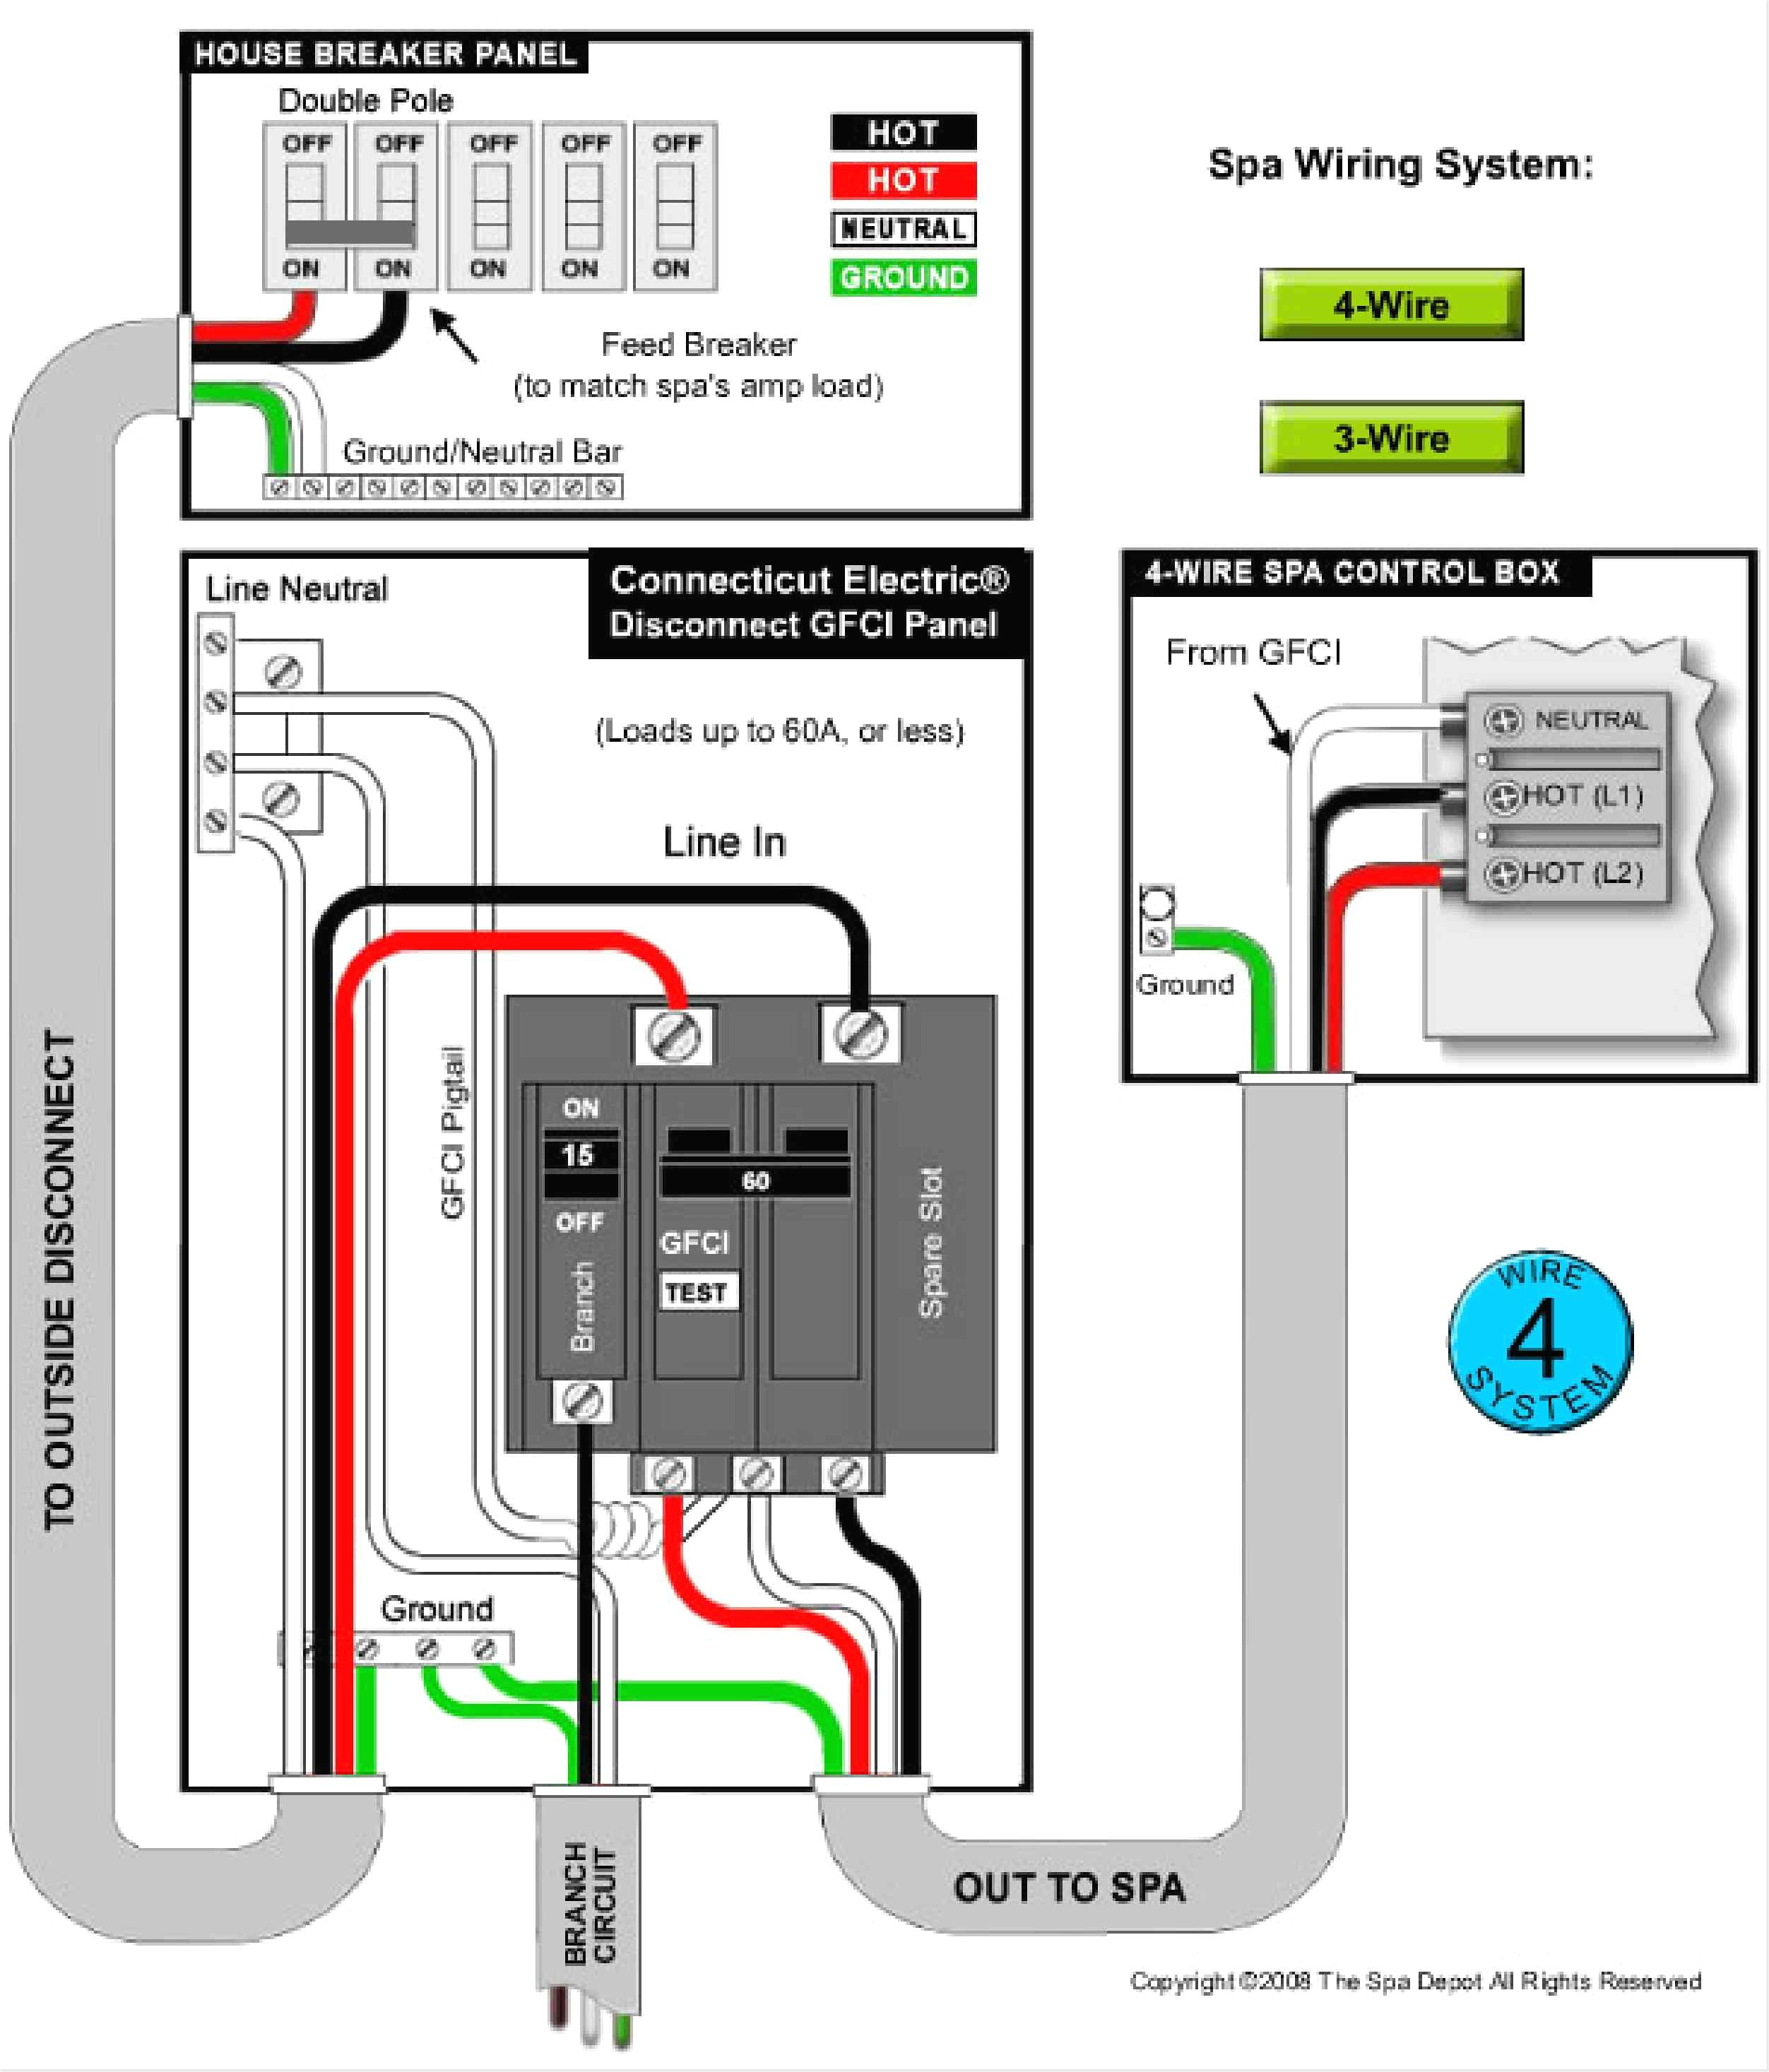 wiring a gfci schematic daisy chain diagram wiring diagram perf ce wiring a gfci schematic daisy chain diagram wiring diagram fascinating wiring a gfci schematic daisy chain diagram